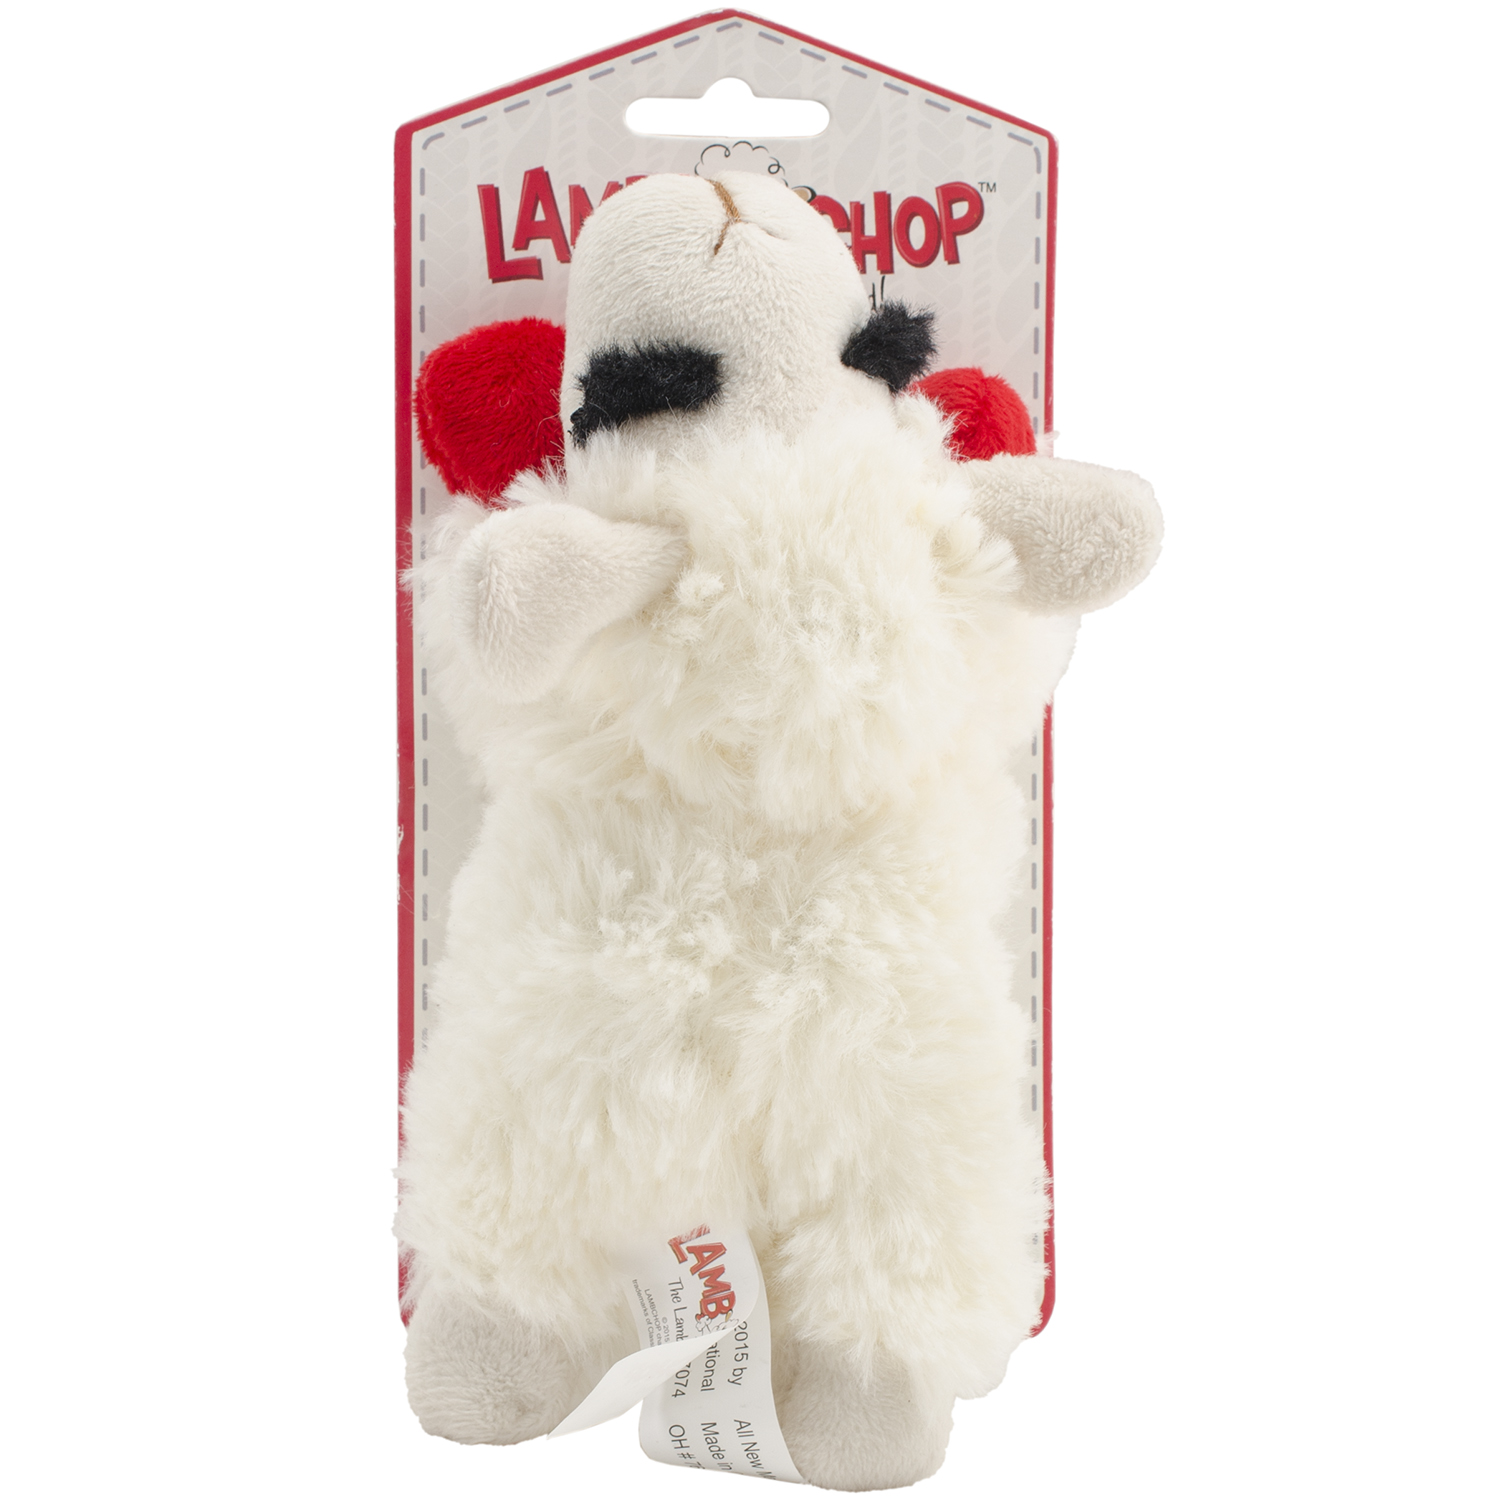 "Multipet Lamb Chop 7"" Toy-"